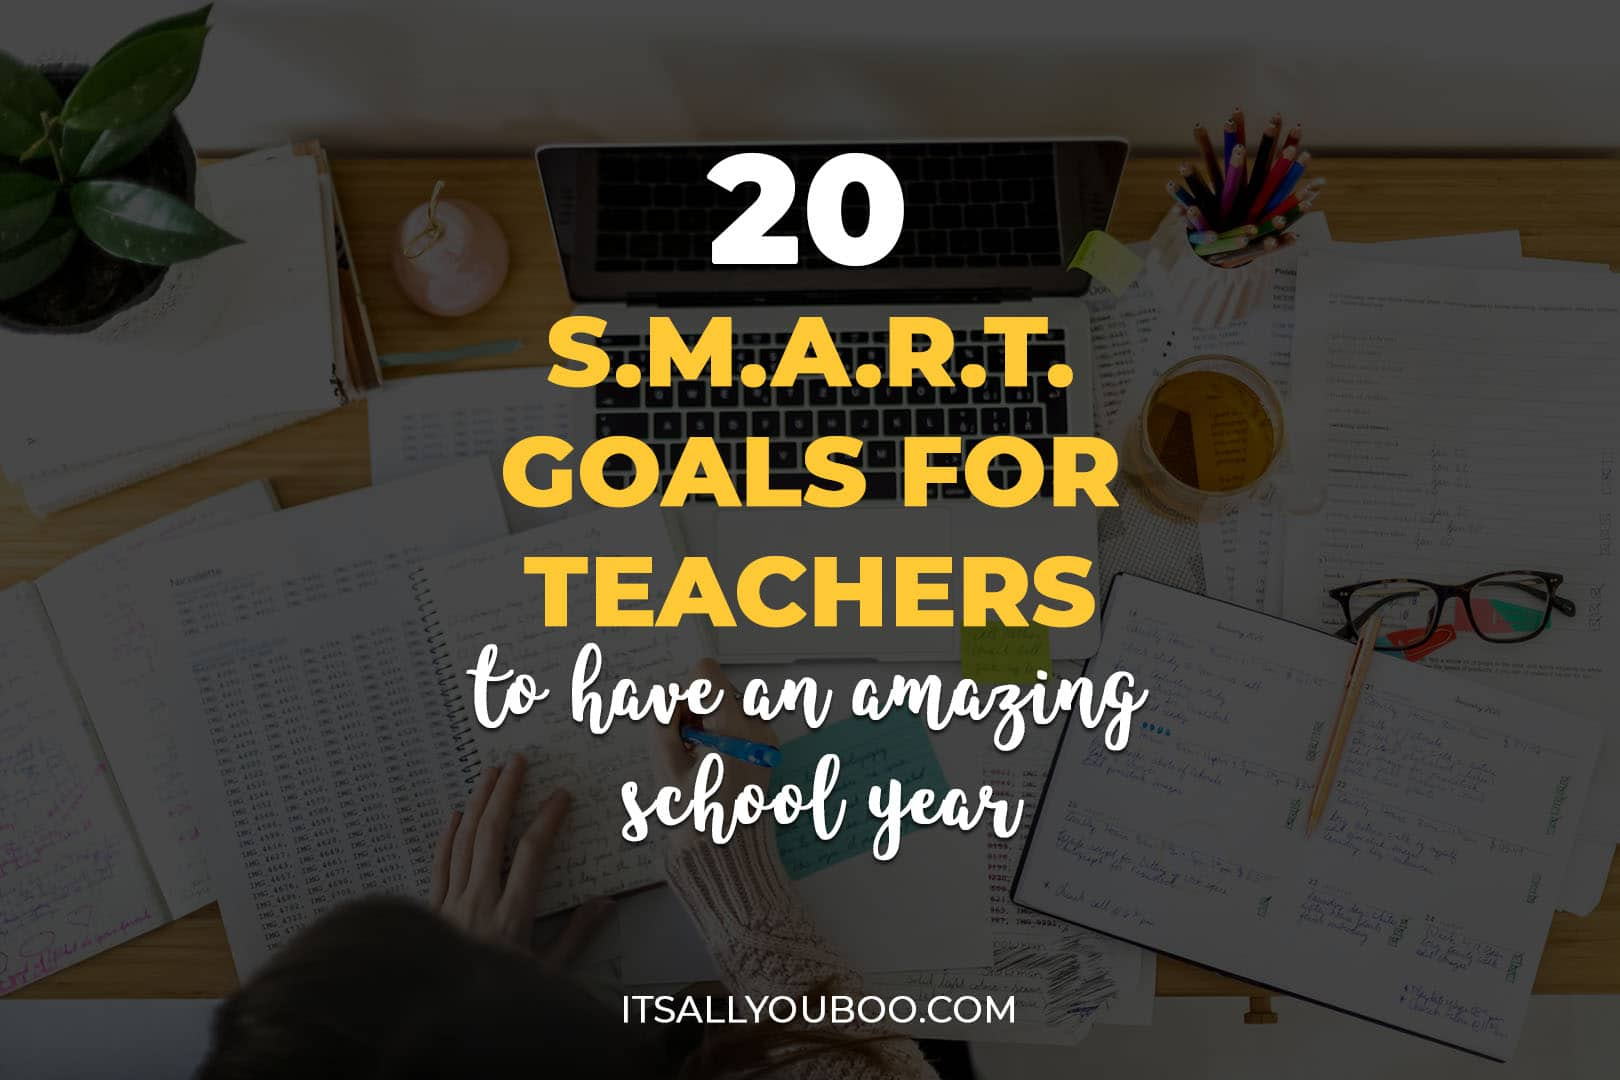 20 SMART Goals for Teachers to Have an Amazing School Year